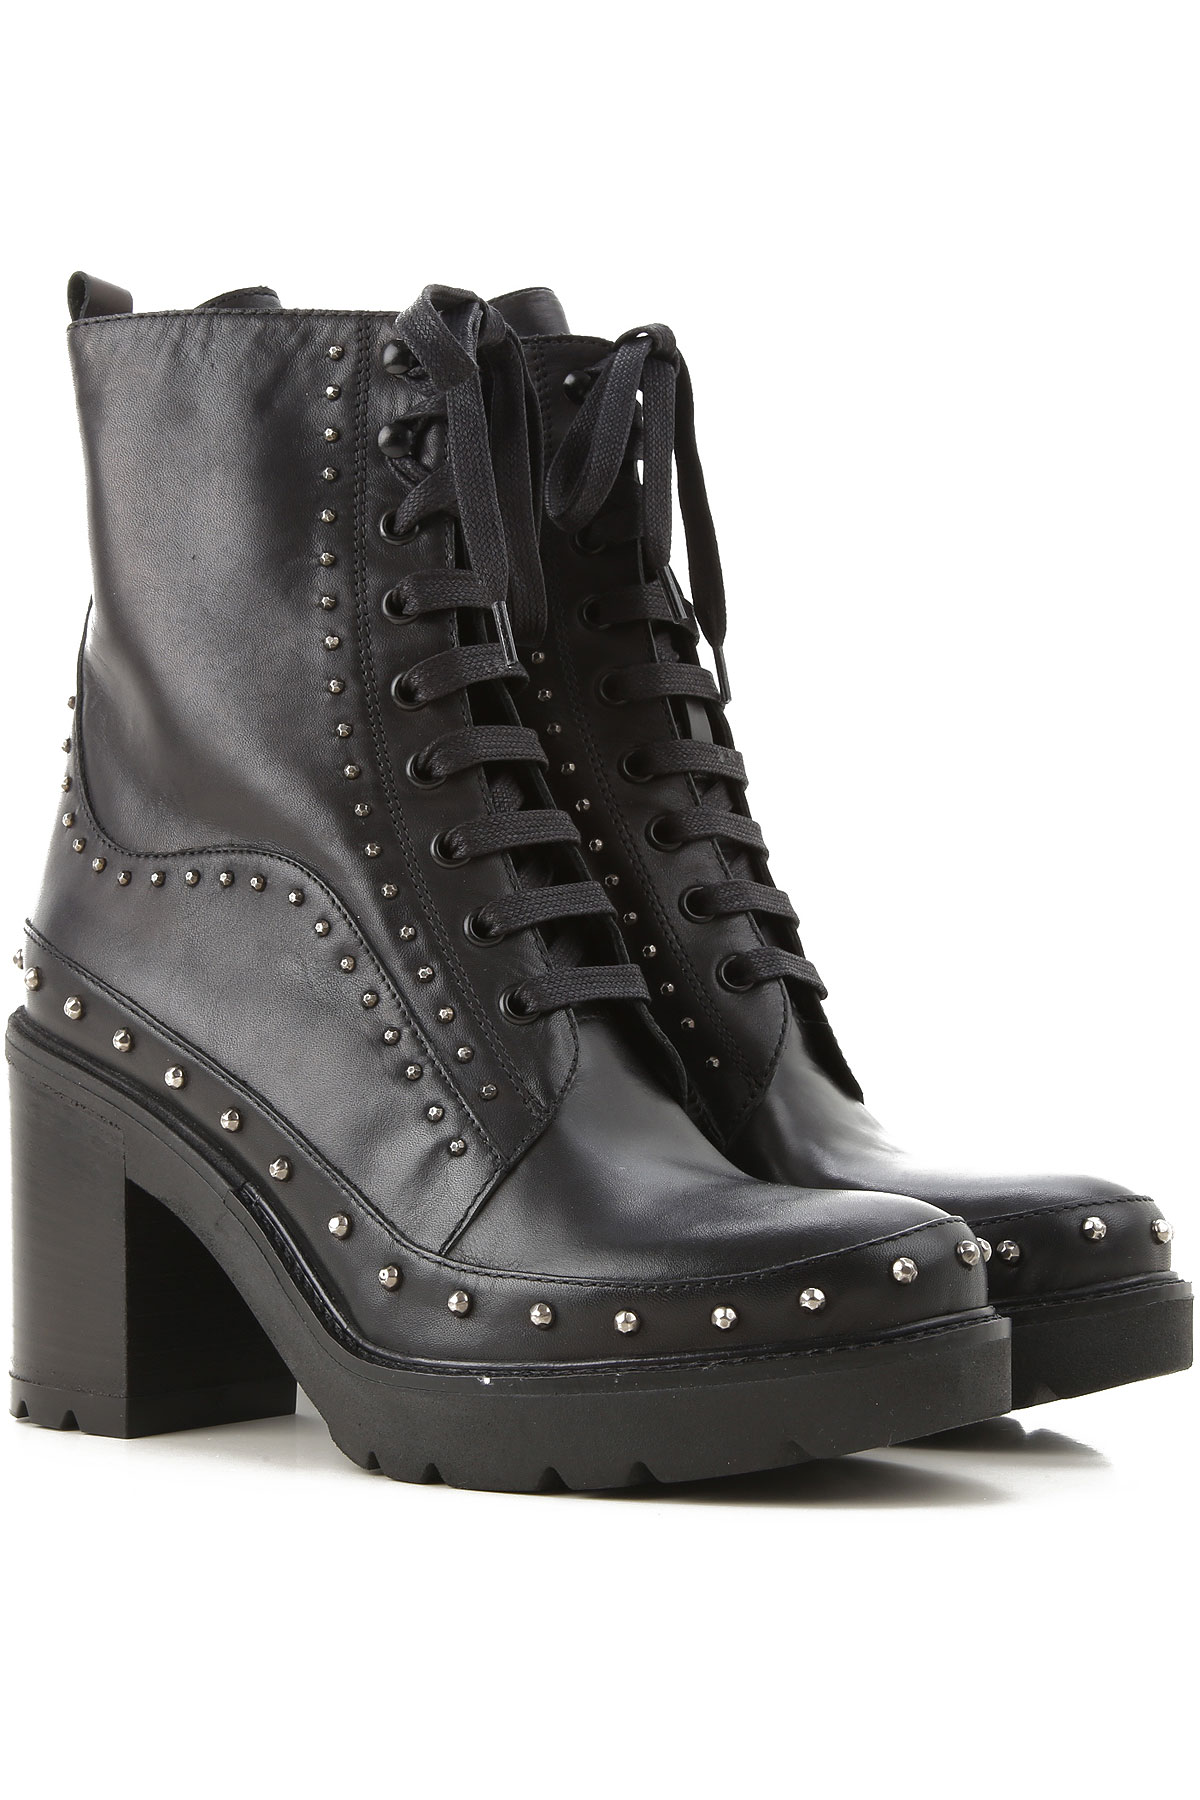 Pinko Boots for Women, Booties On Sale, Black, Leather, 2019, 5 6 8